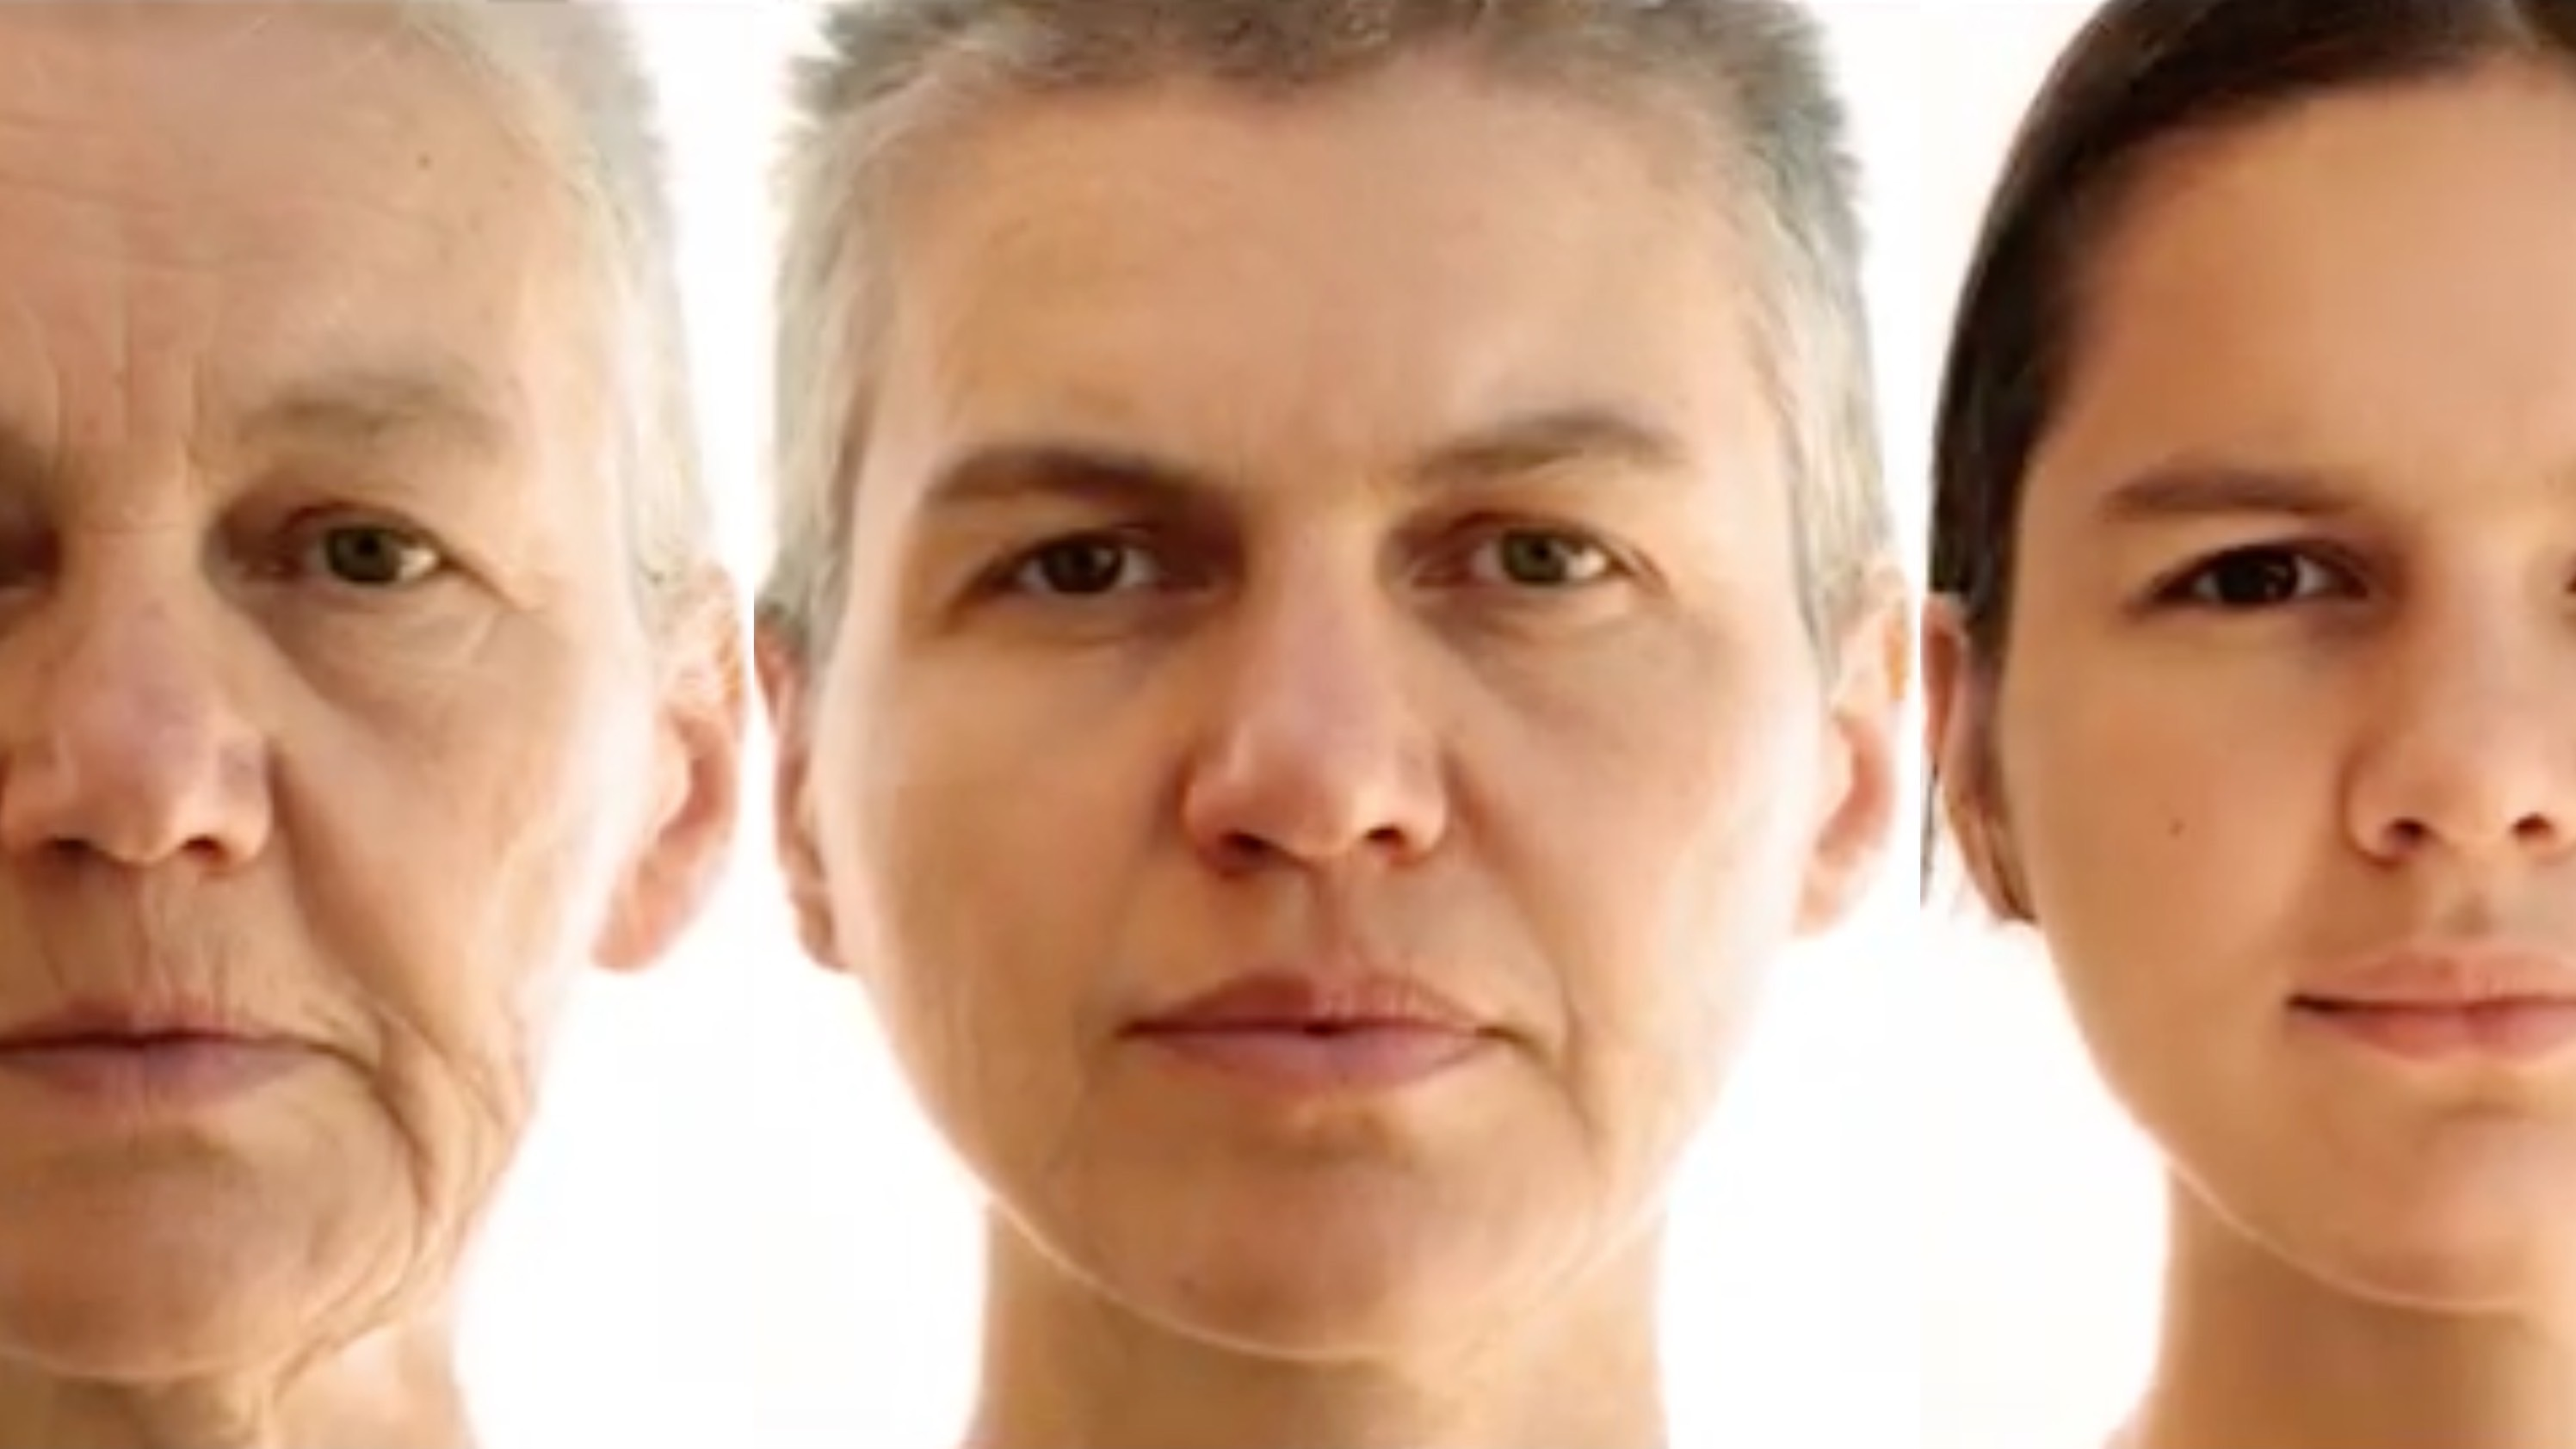 How to reverse aging 87